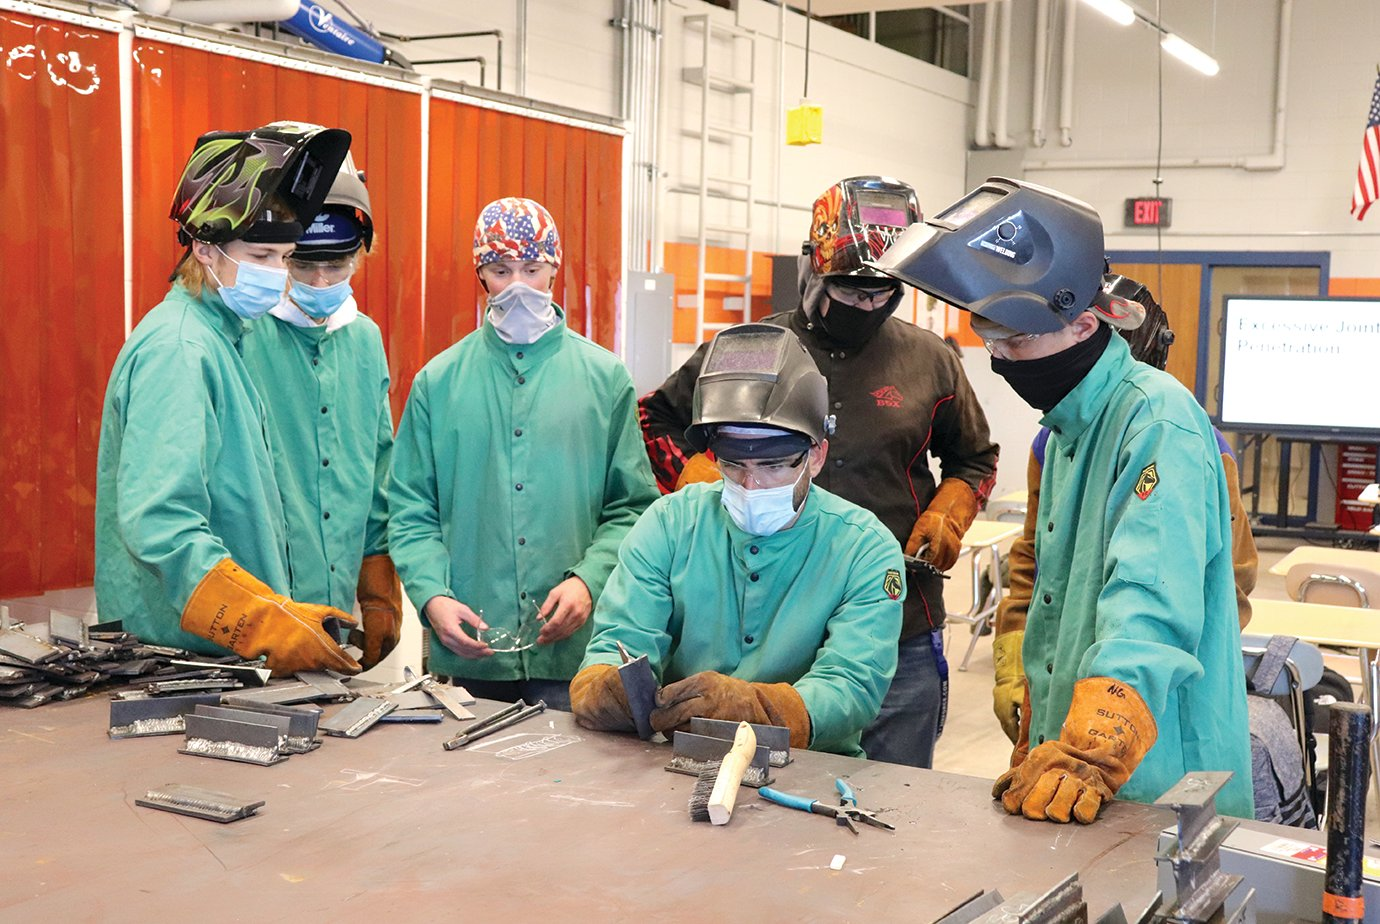 Students enrolled in a new welding program at North Montgomery High School, in collaboration with West Central Indiana Career and Technical Education Center, observe the technique of veteran instructor Jeff Harp, seated, inside the school's renovated manufacturing wing. Students alongside Harp include Gavin Haltom, from left, Noah Hudeson, Sean Kilgour, Jarrett Weder, Timothy Coffman and Nate Gray.